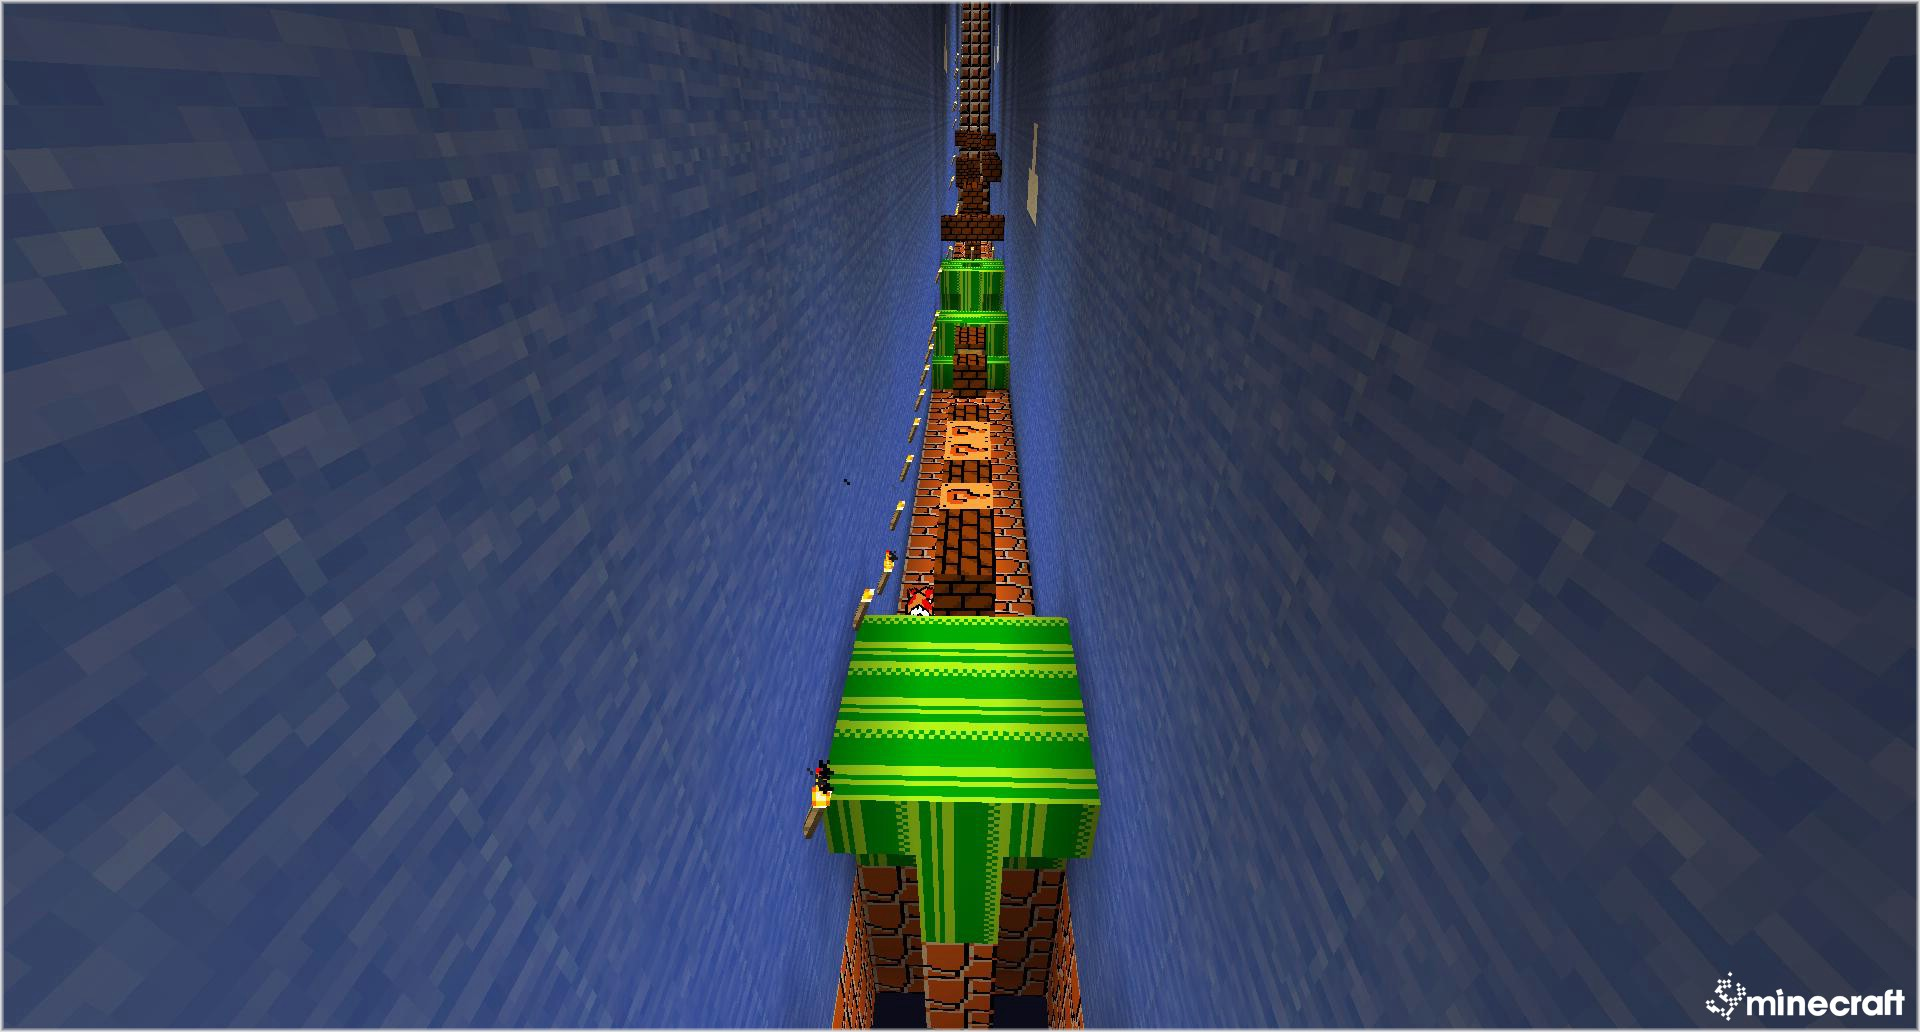 http://img.niceminecraft.net/Map/Super-Mario-Bros-Map-1.jpg